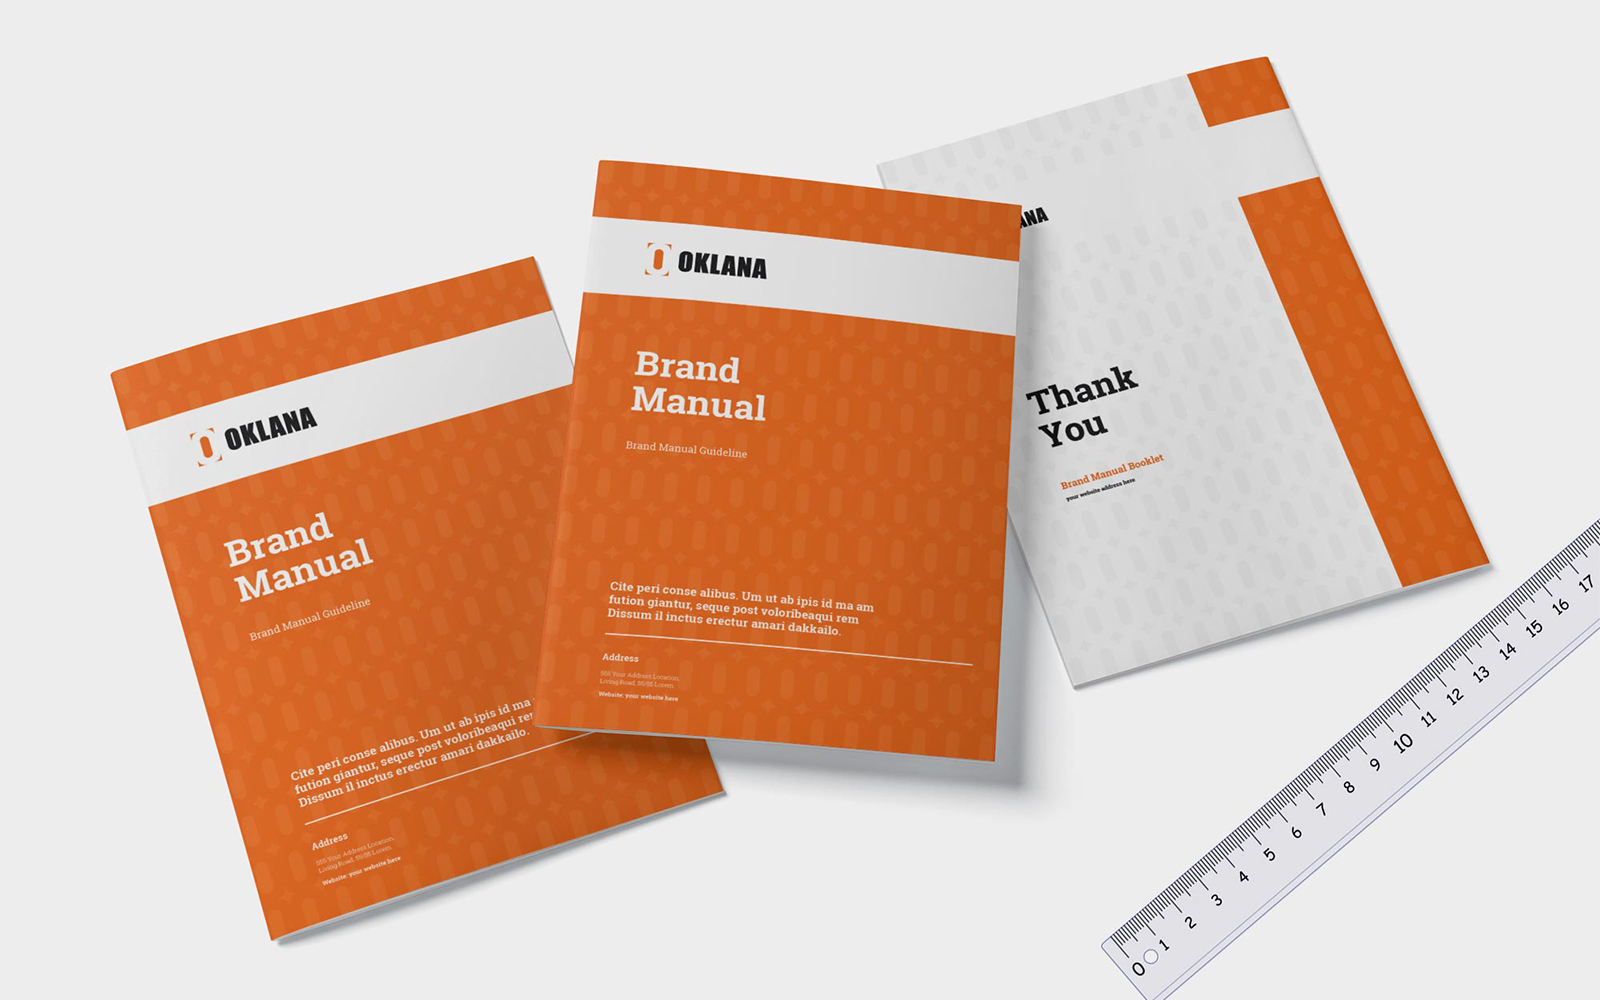 Brand Manual Guideline Brochure Corporate Identity Template